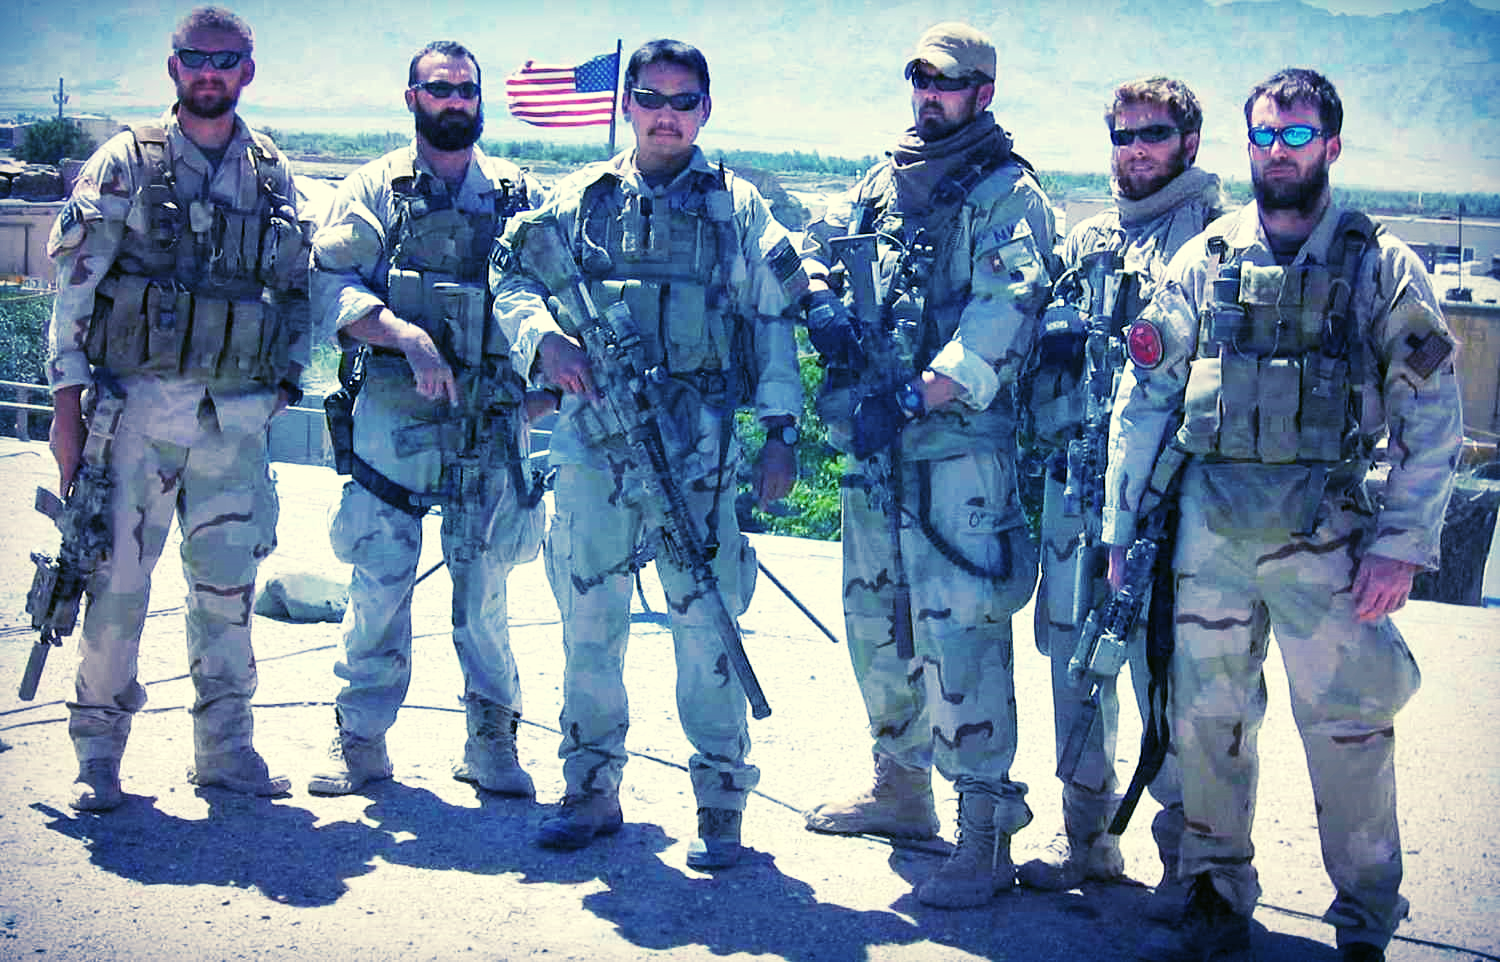 Marcus Luttrell, 3rd from the right